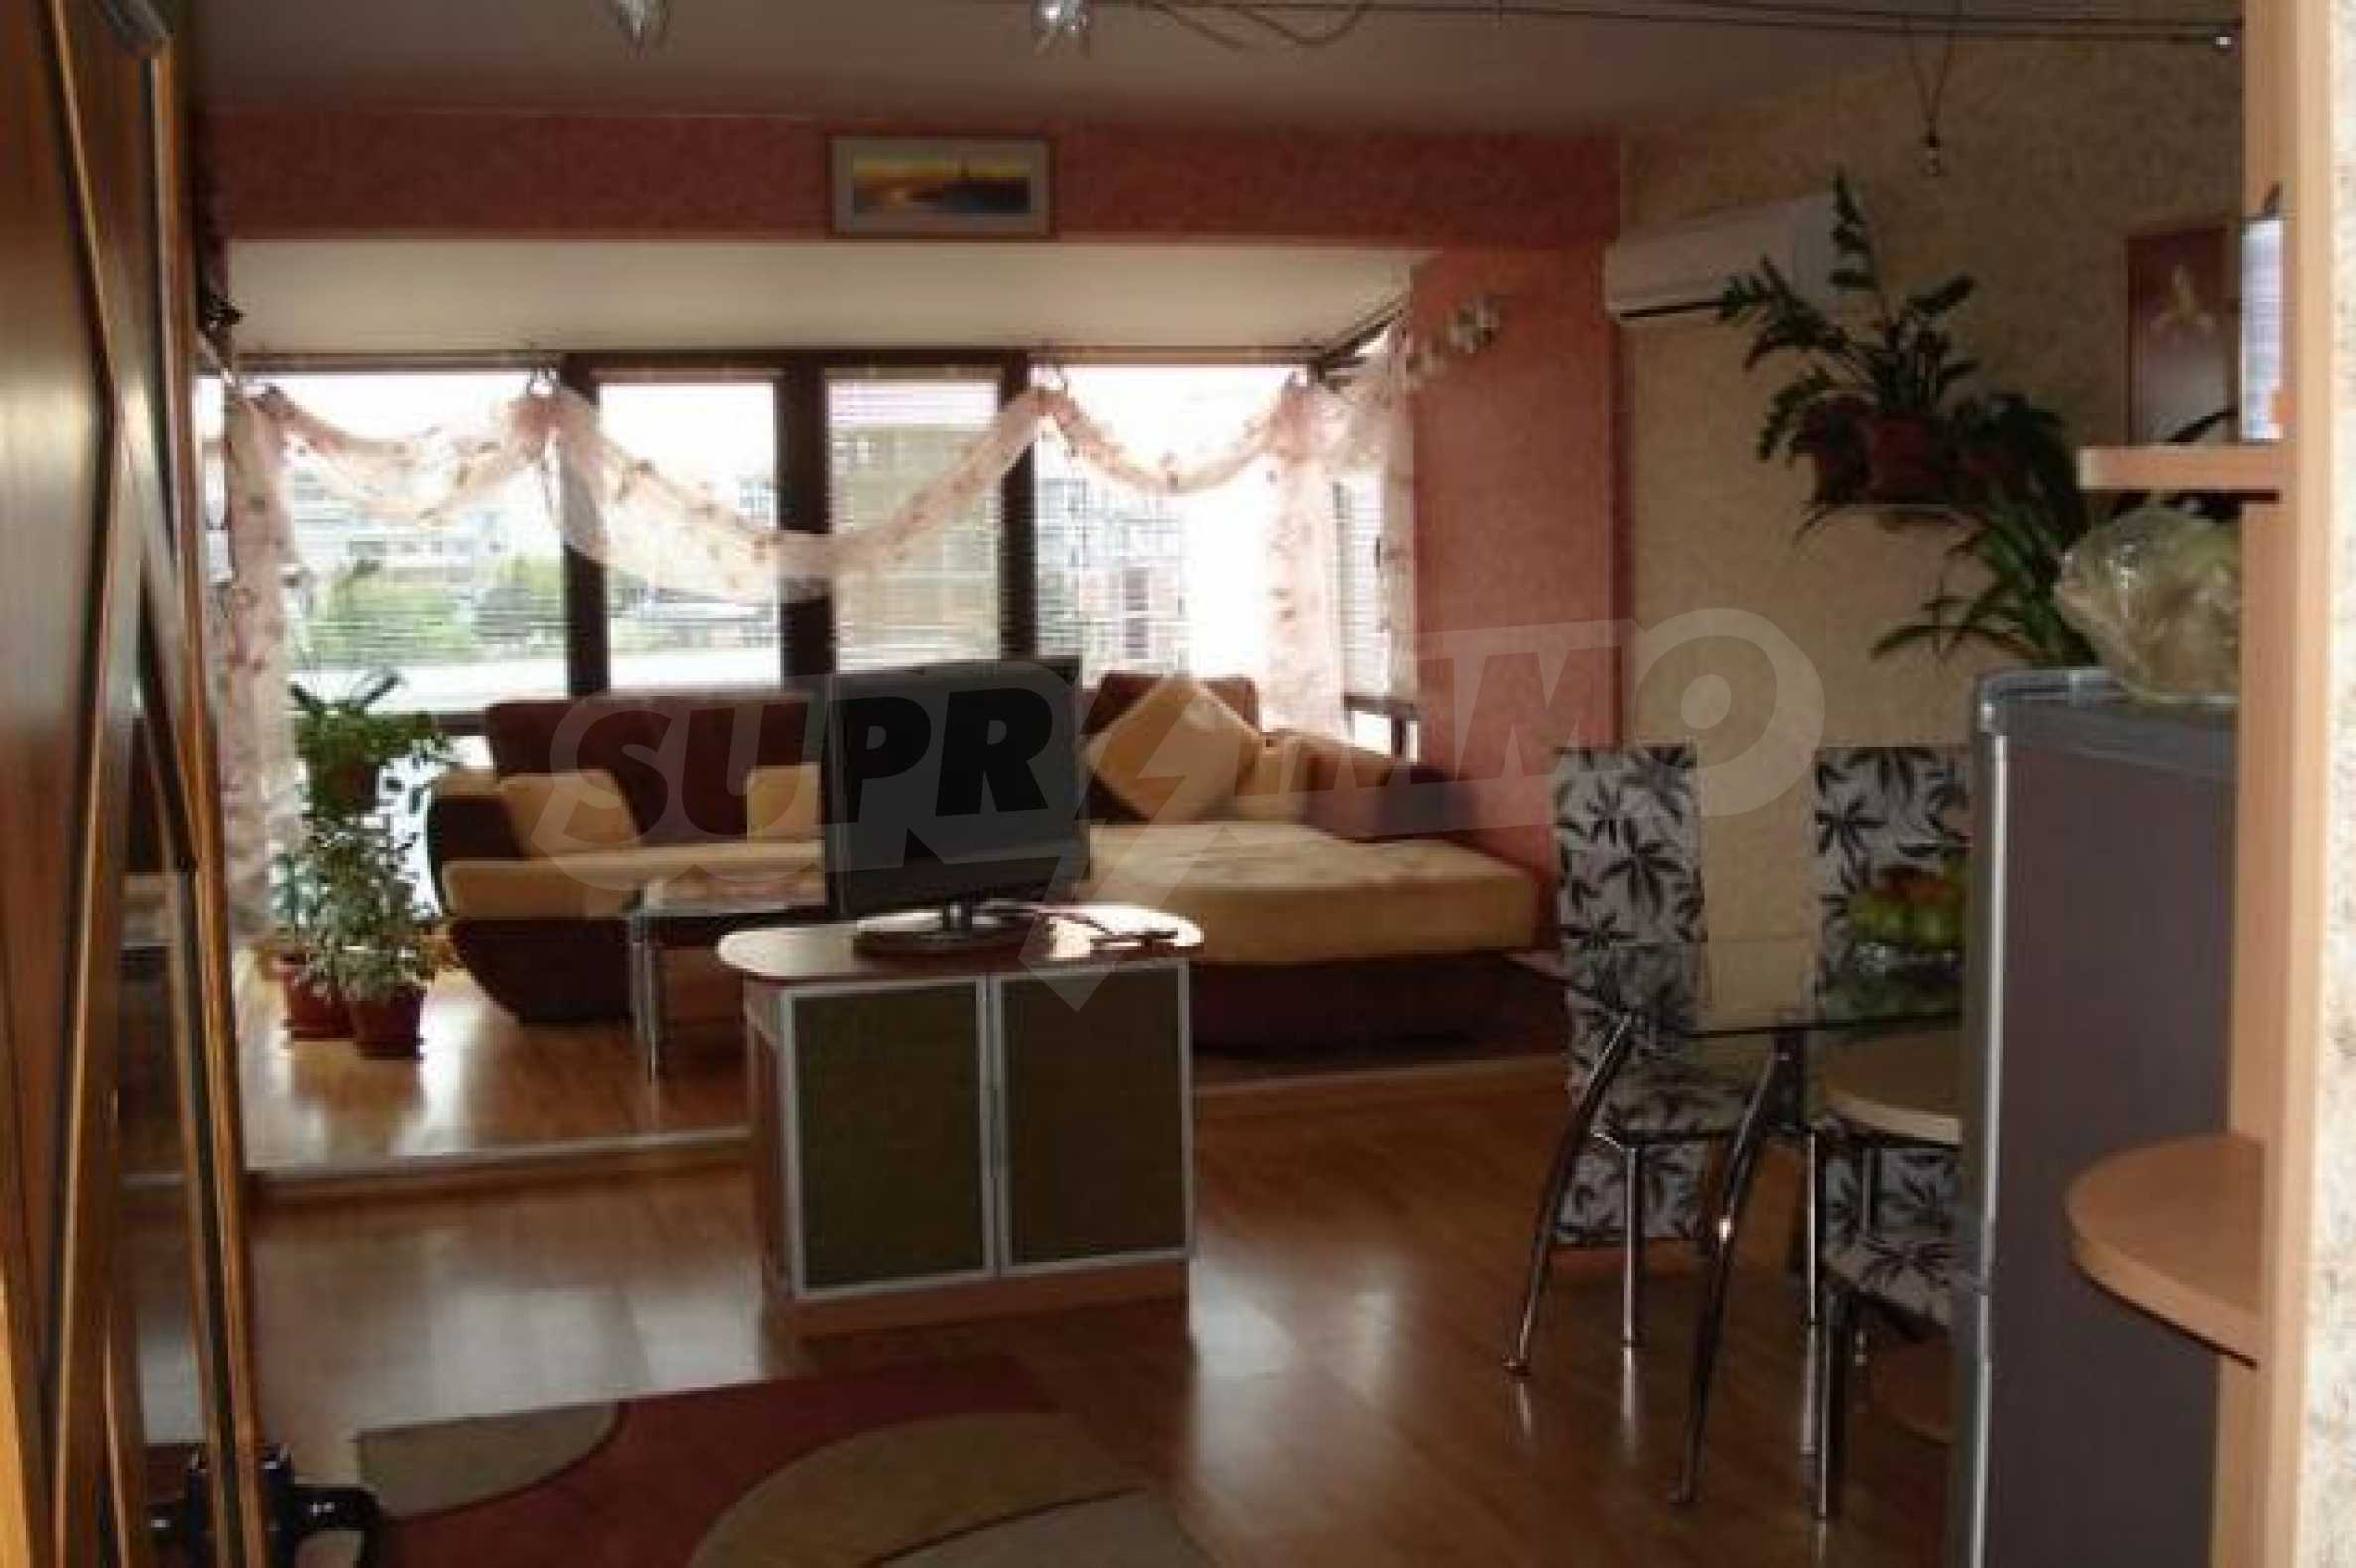 3-bedroom apartment for sale in Pomorie 8